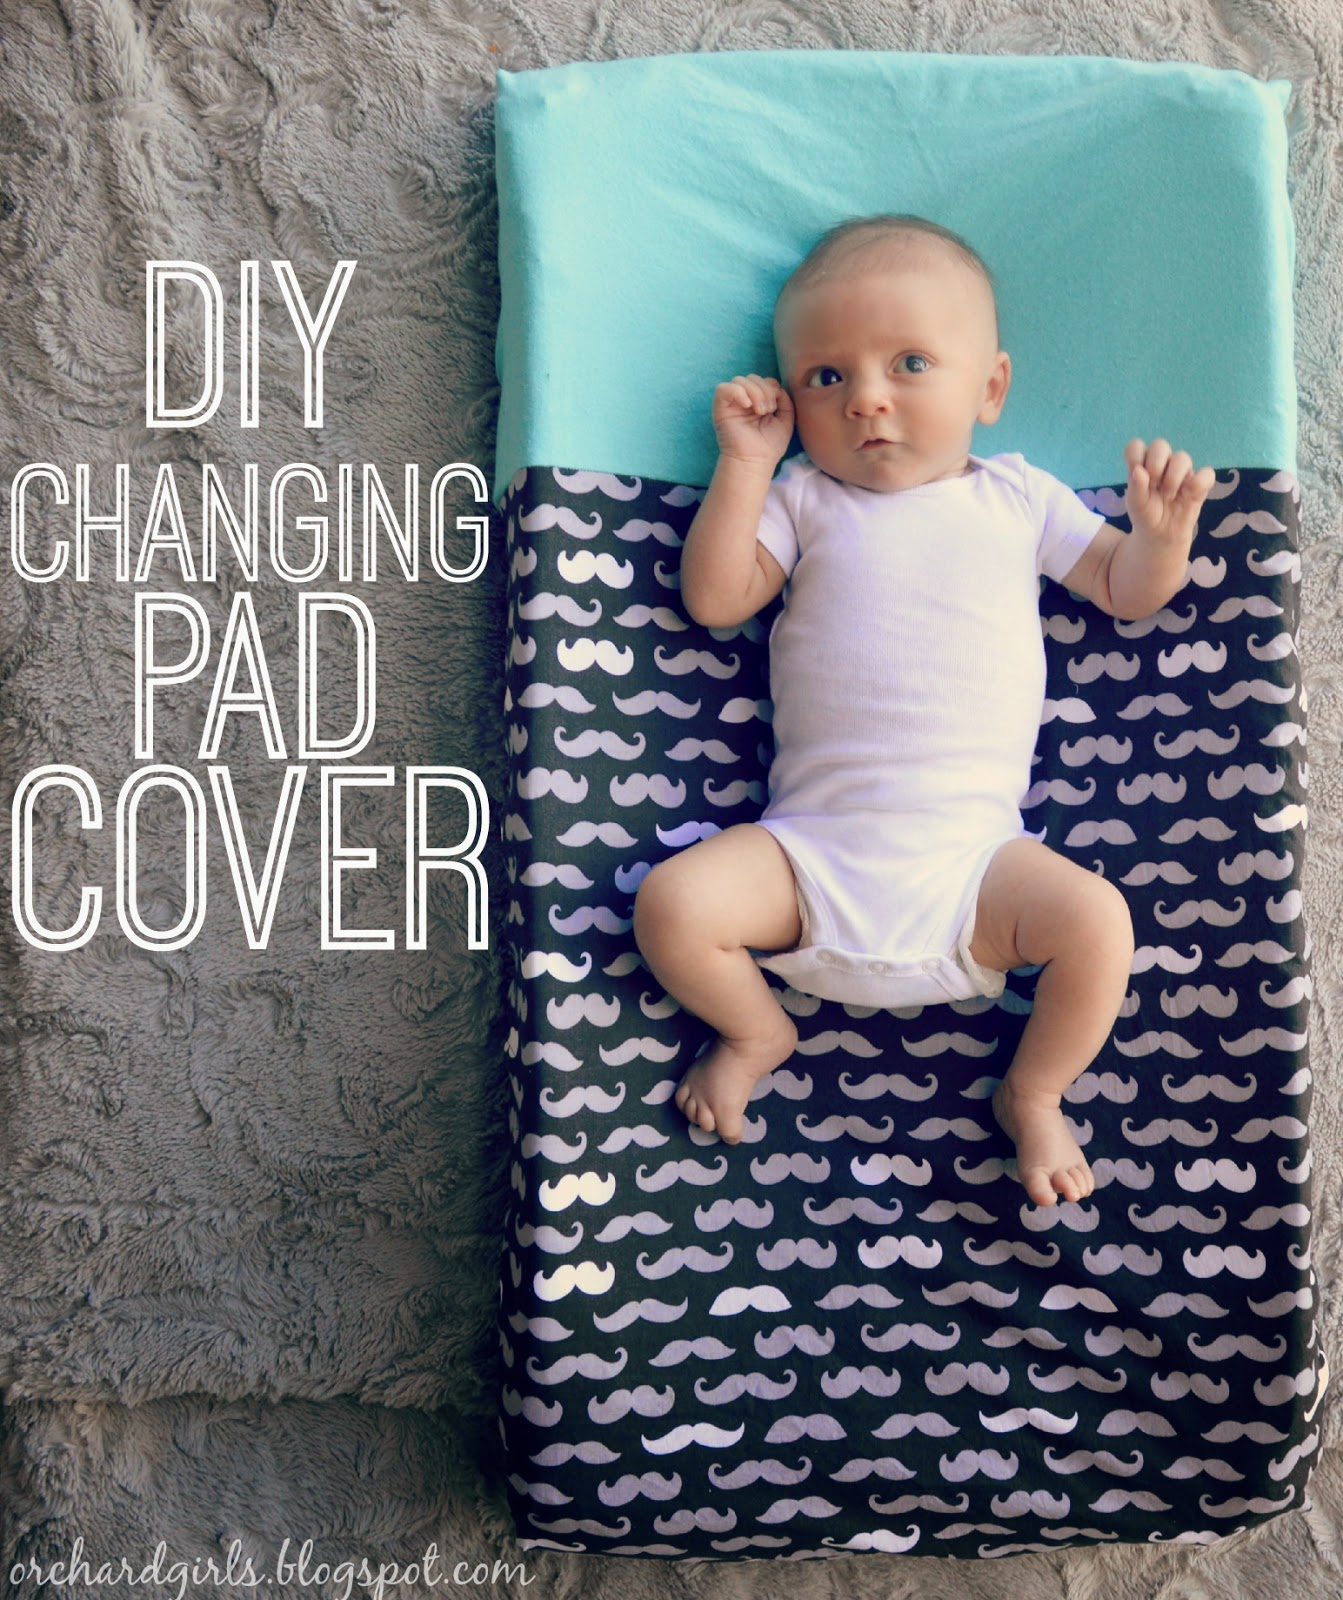 DIY Changing Pad Cover by Orchard Girls